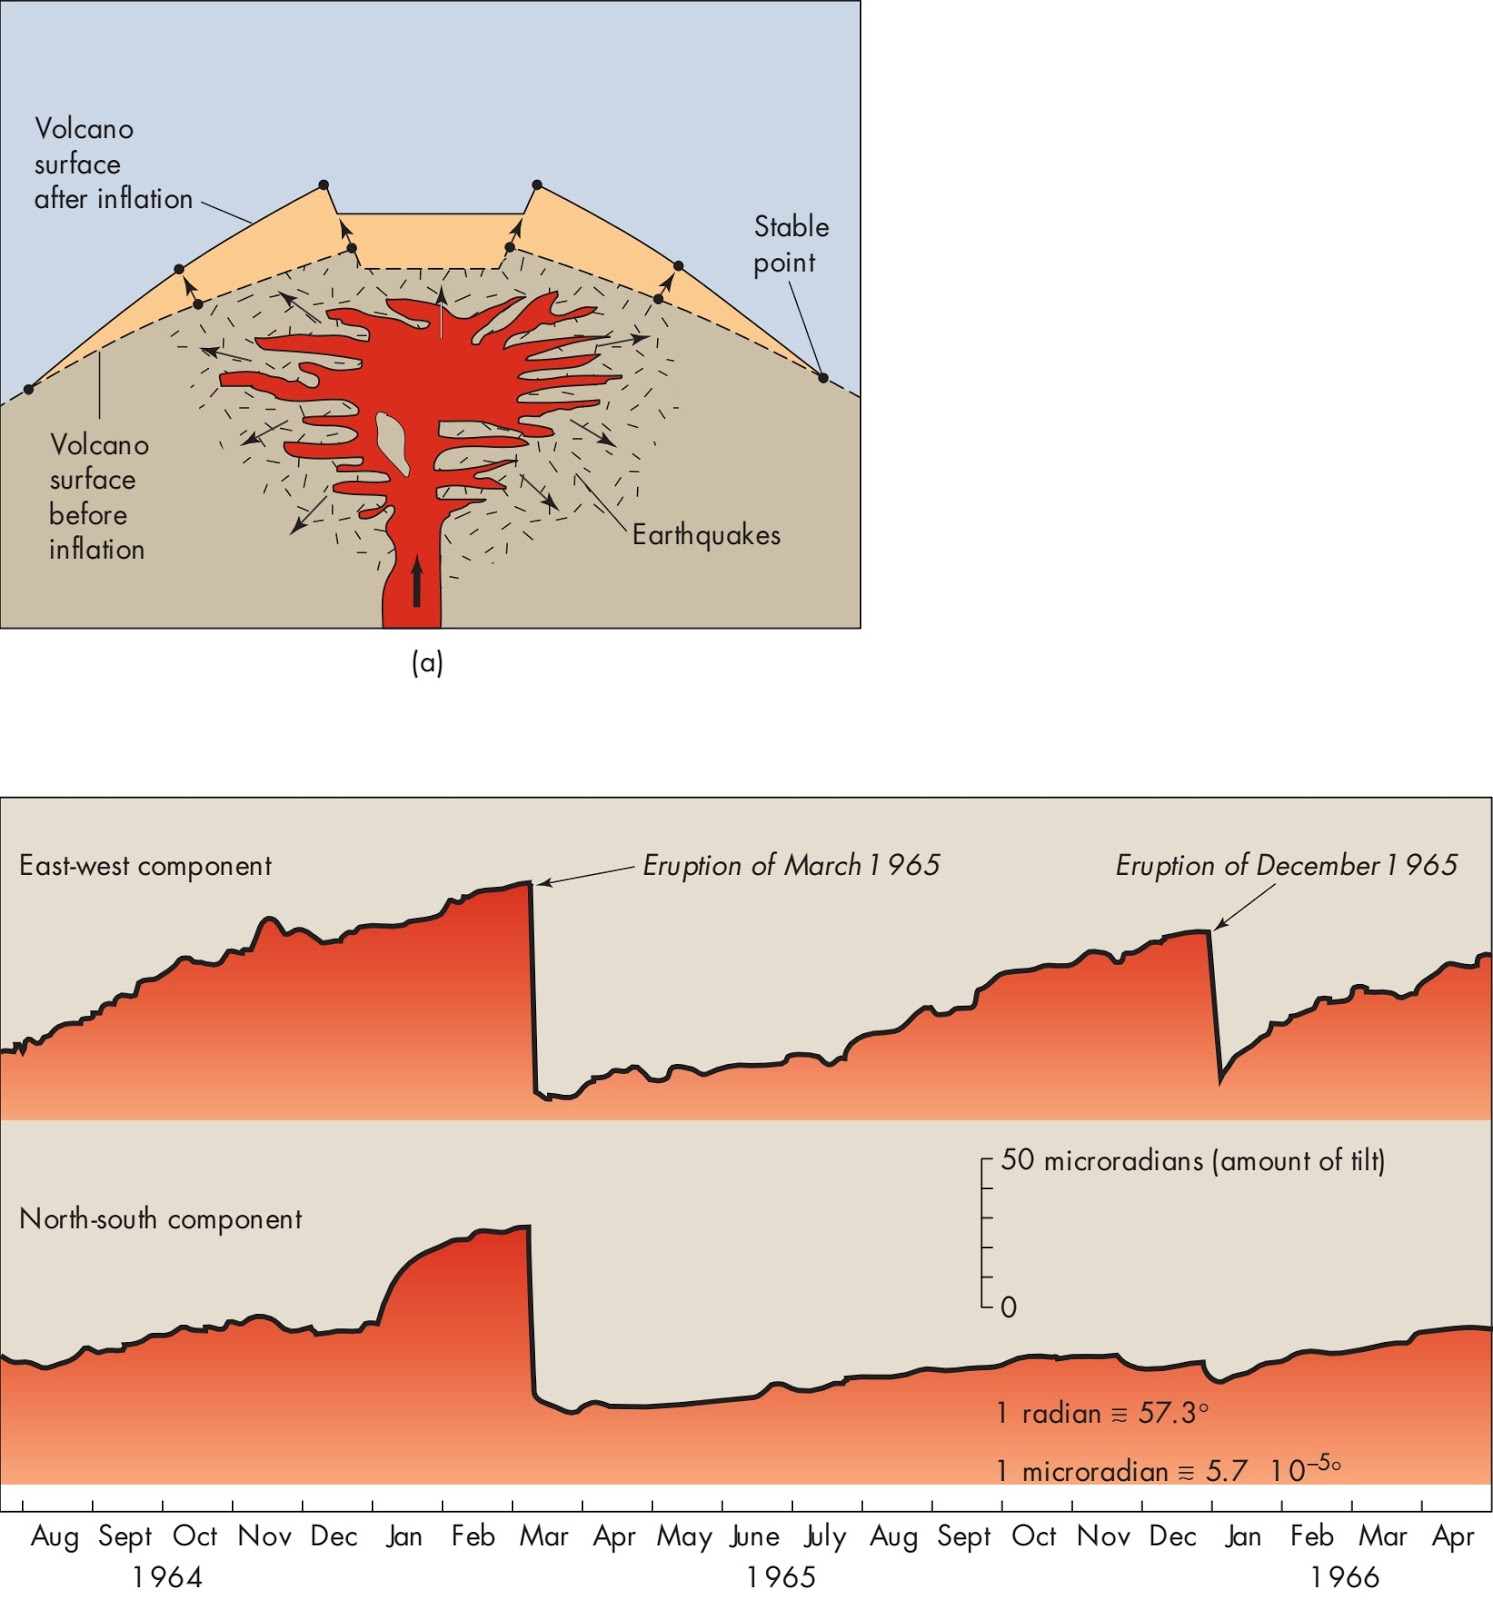 an analysis of a volcanic activity We investigate eruptive activity by analysis of thermal-alert data from the modis ( moderate resolution imaging spectrometer) thermal infrared satellite instrument.